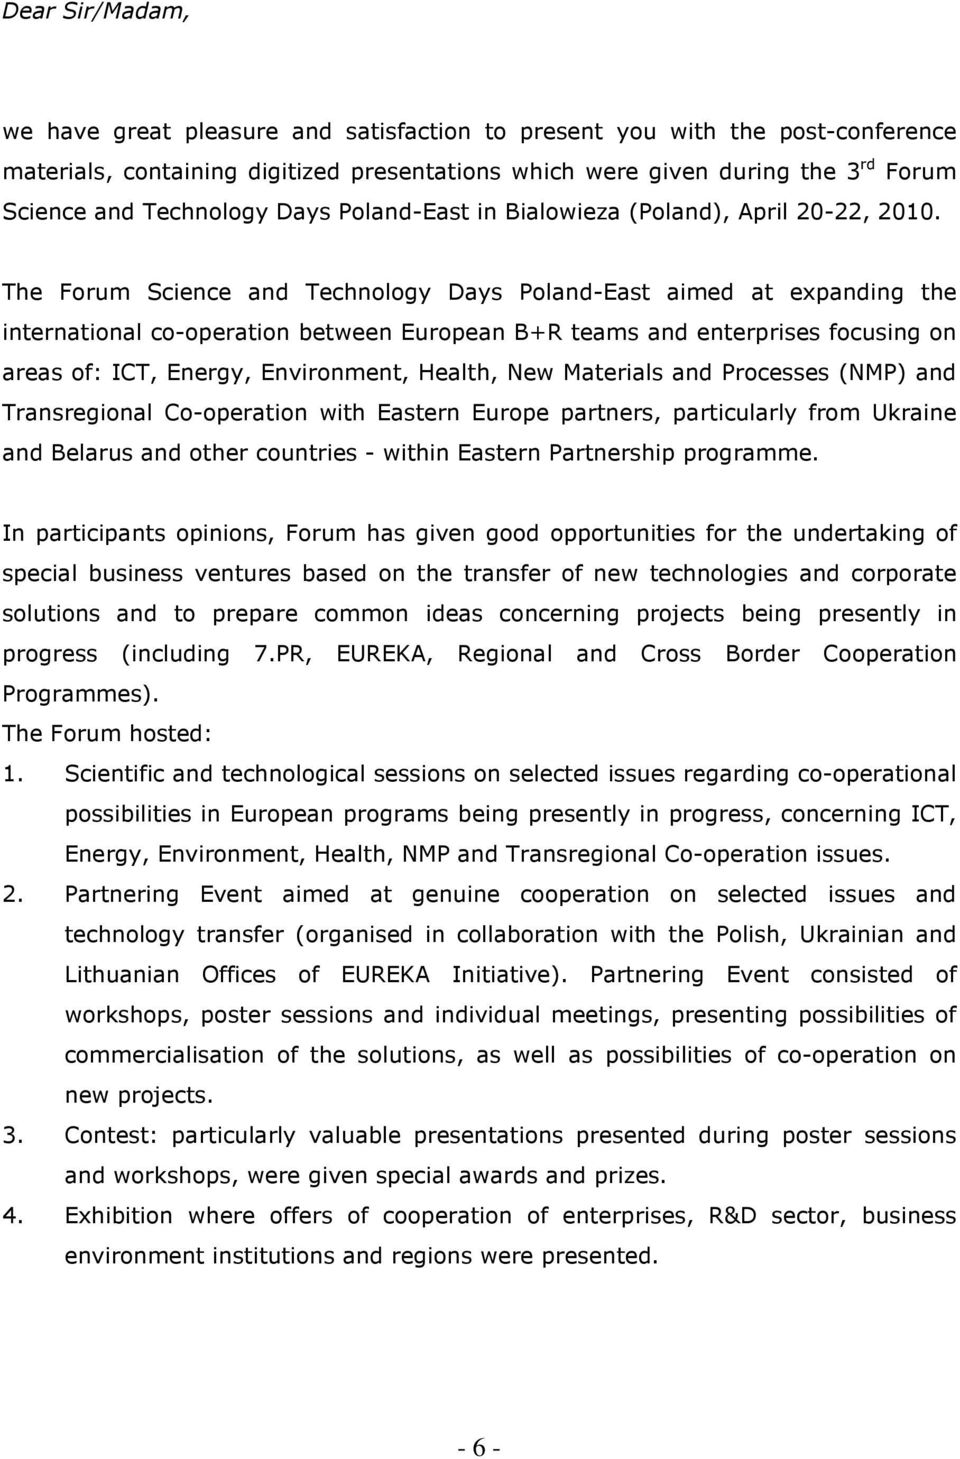 The Forum Science and Technology Days -East aimed at expanding the international co-operation between European B+R teams and enterprises focusing on areas of: ICT, Energy, Environment, Health, New